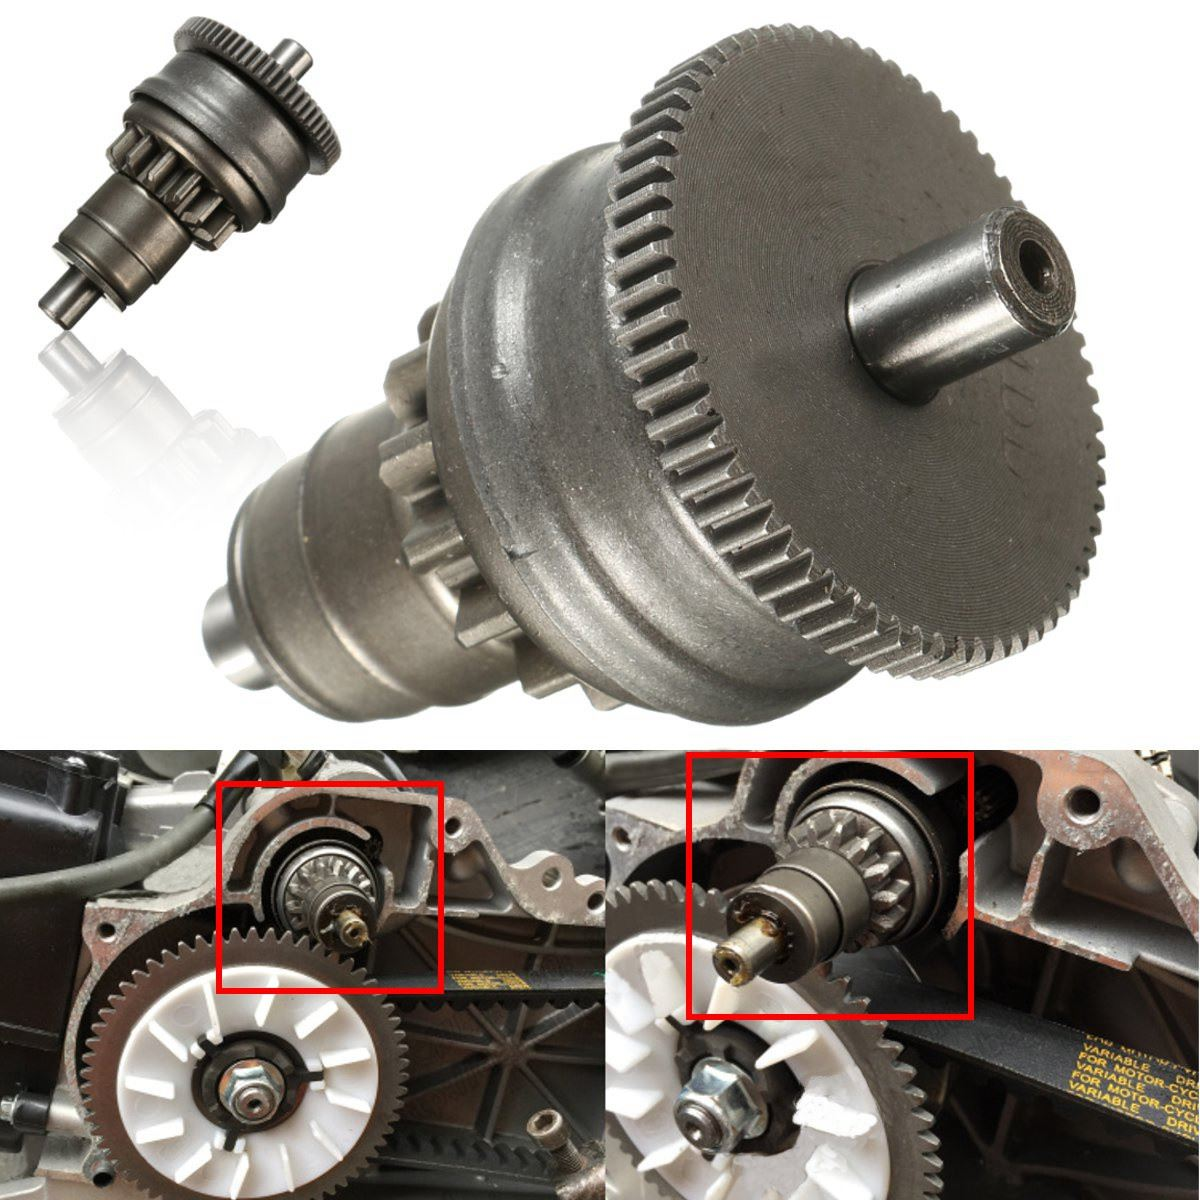 chrome starter motor clutch gear assembly for gy6 49cc 50cc 139qmb scooter mopeds atv in engines from automobiles motorcycles on aliexpress com alibaba  [ 1200 x 1200 Pixel ]